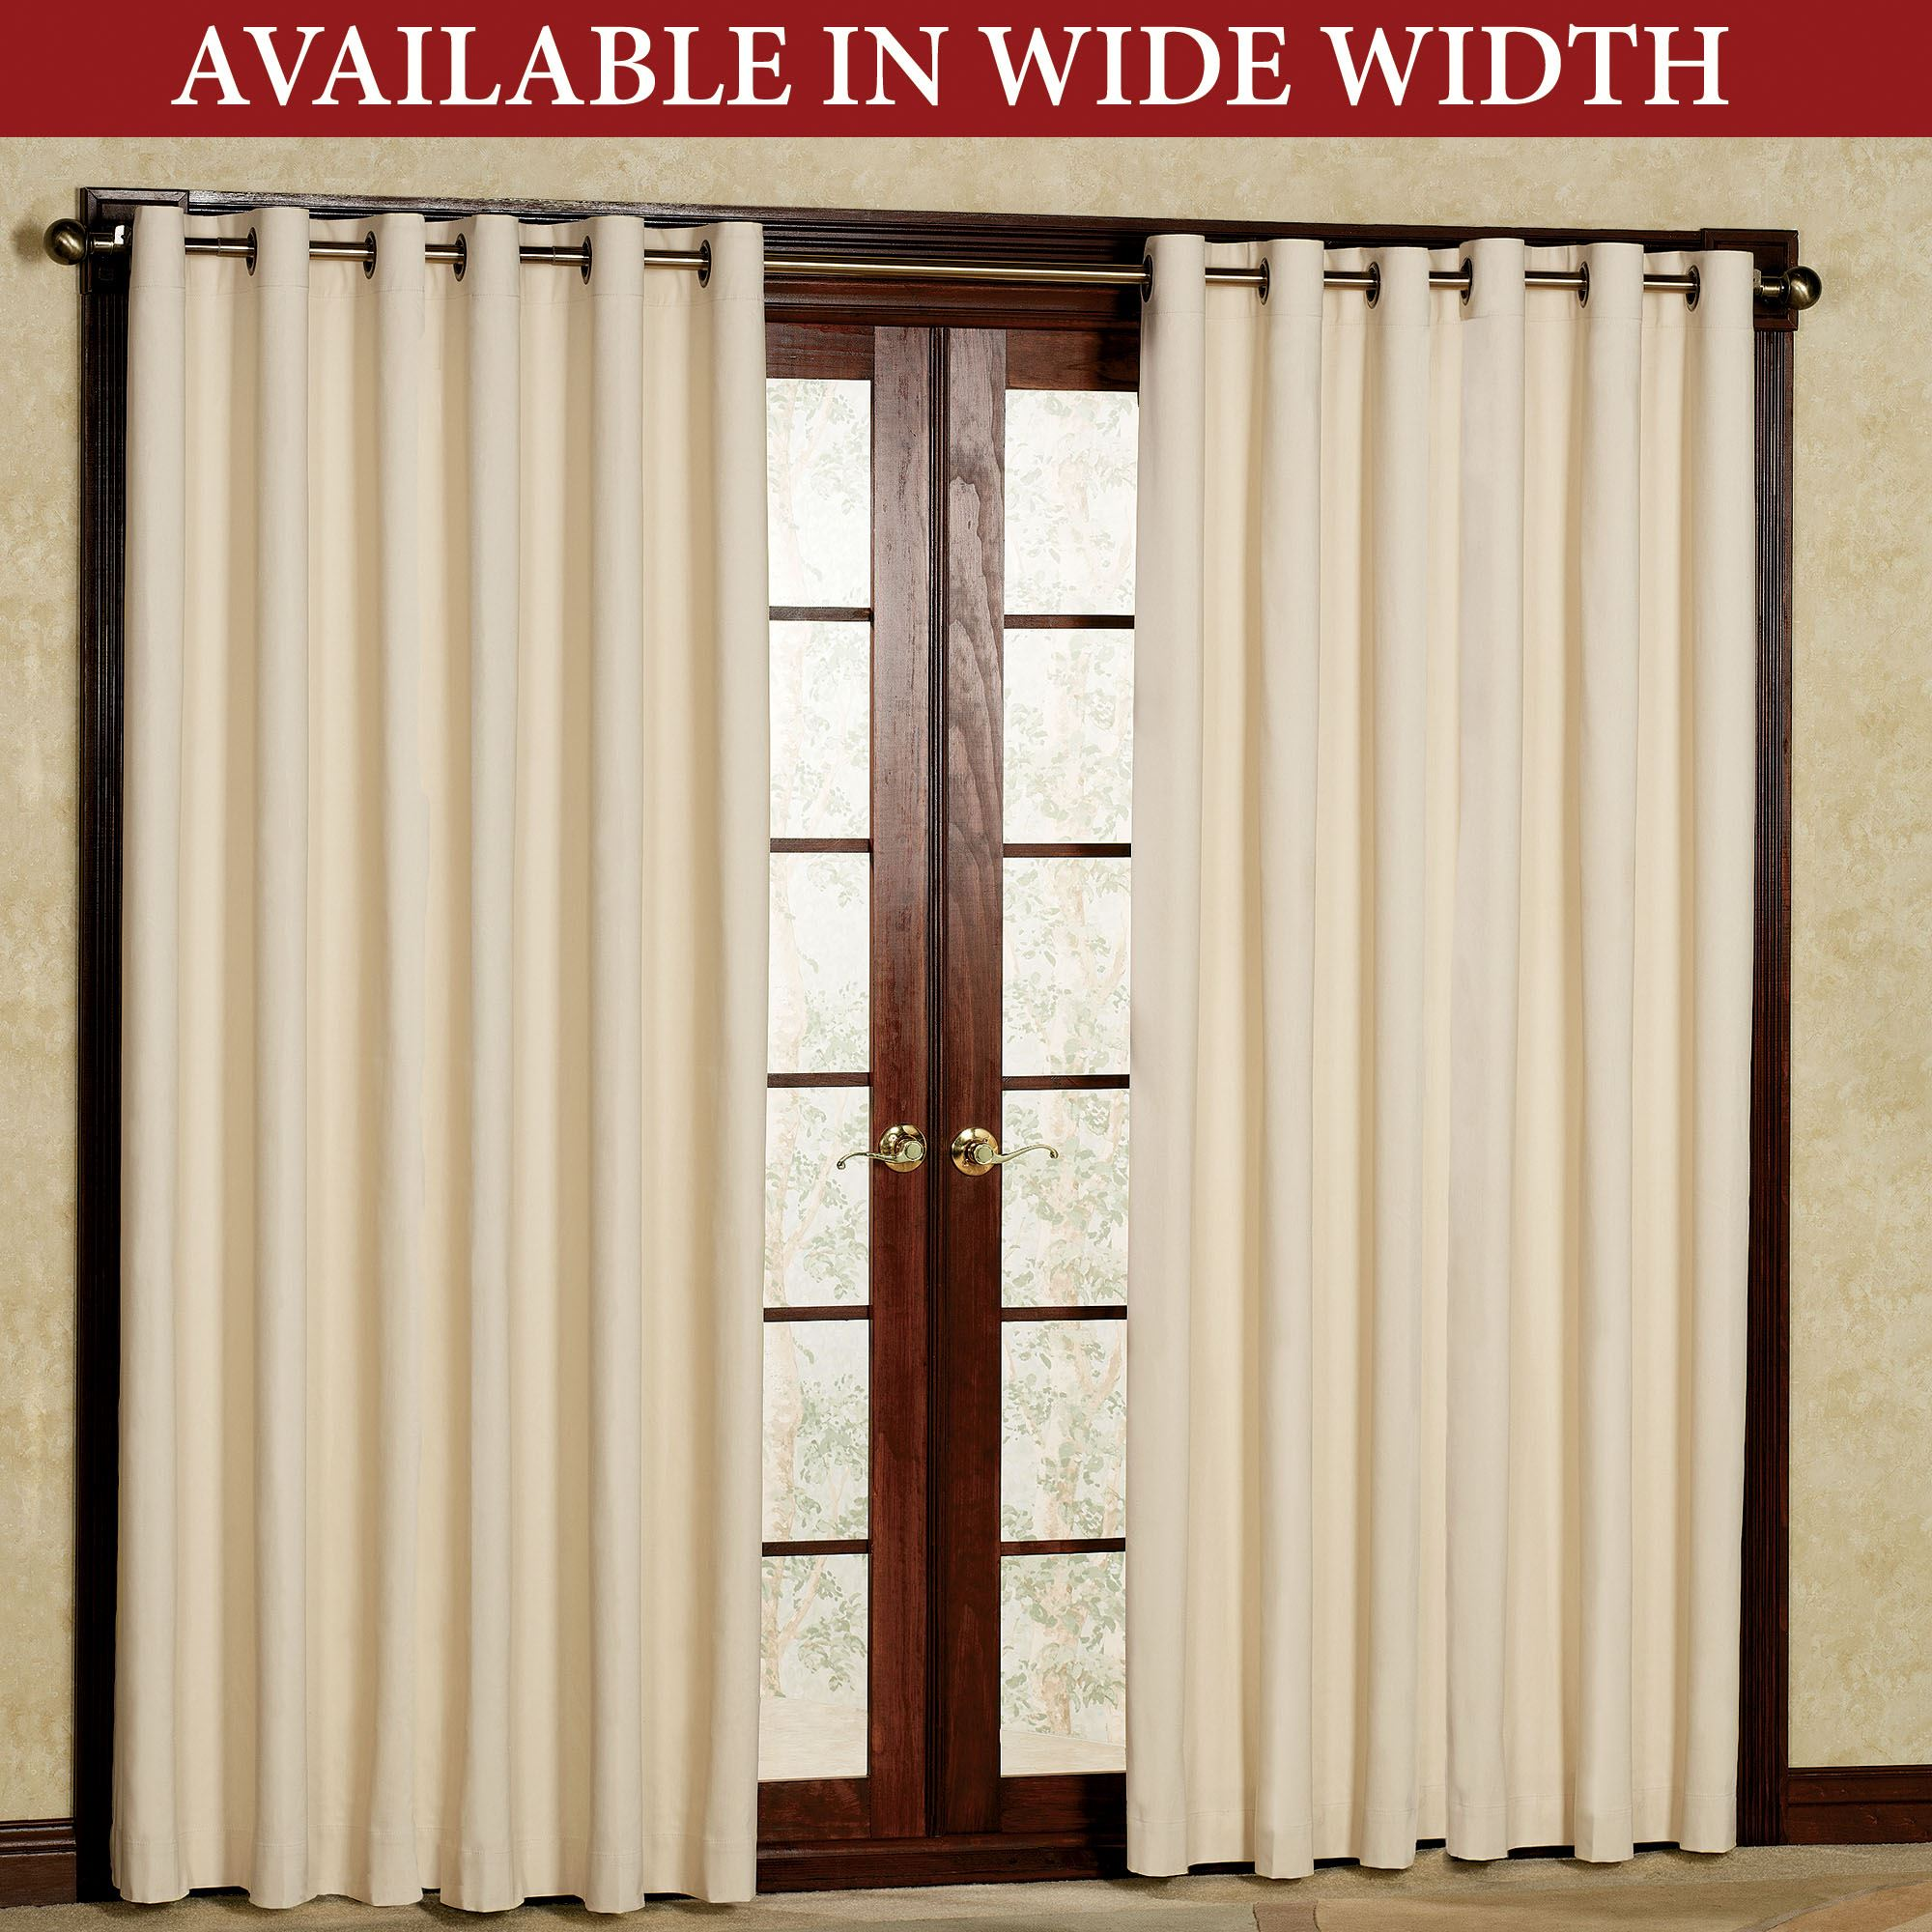 36 Inch Room Darkening Curtains Weathermate Solid Thermalogic Tm Room Darkening Grommet Curtains